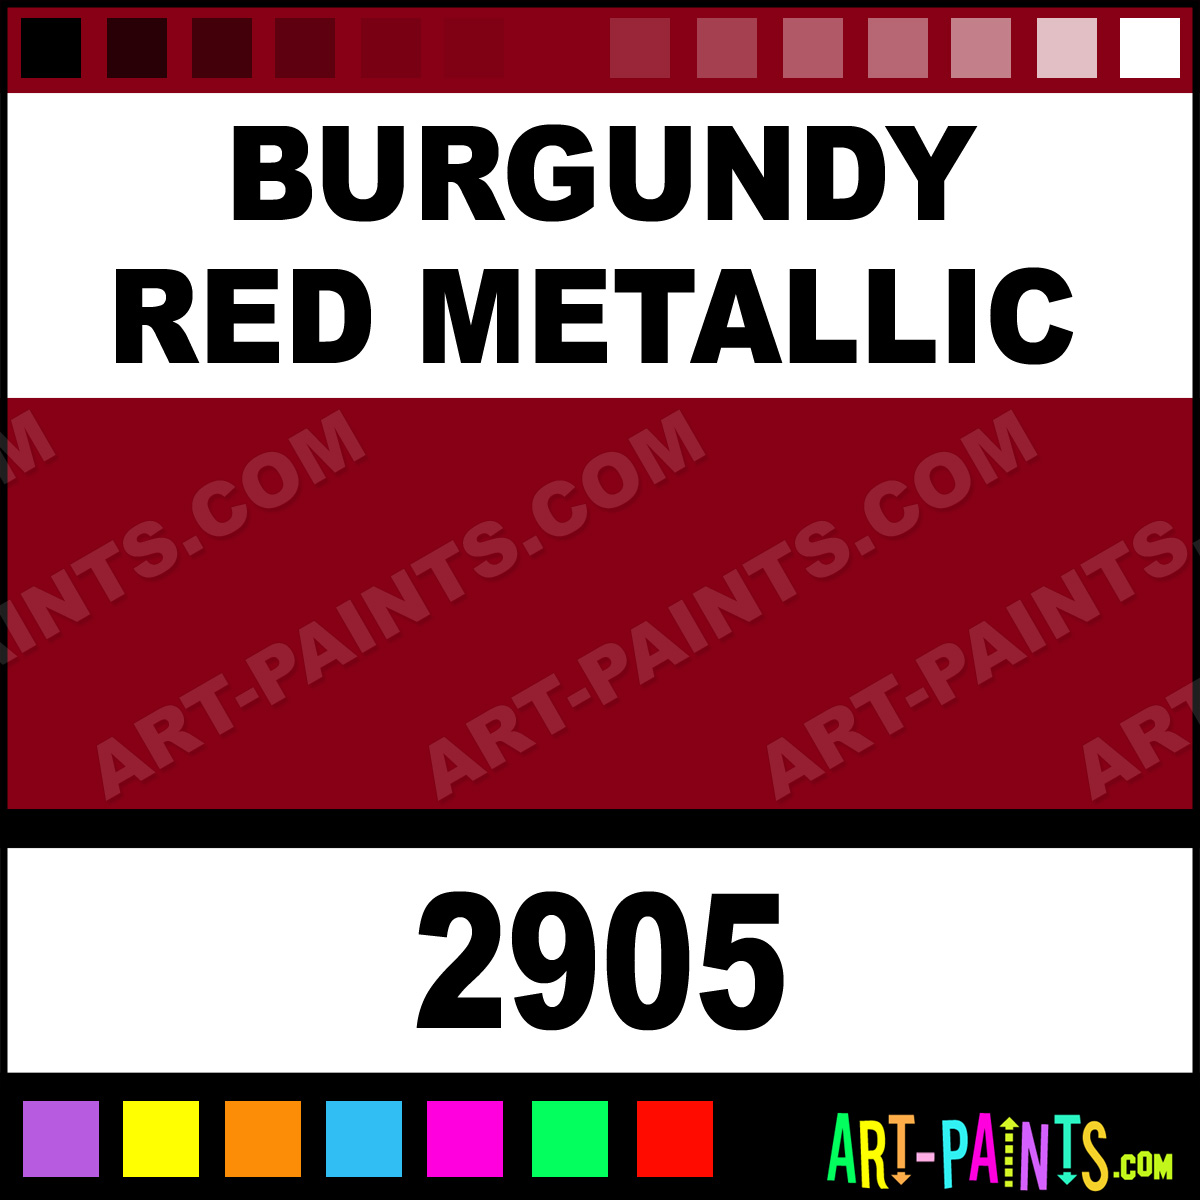 Burgundy Red Metallic Paint 2905 by Model Master Car and Truck PaintsRed Metallic Car Paint